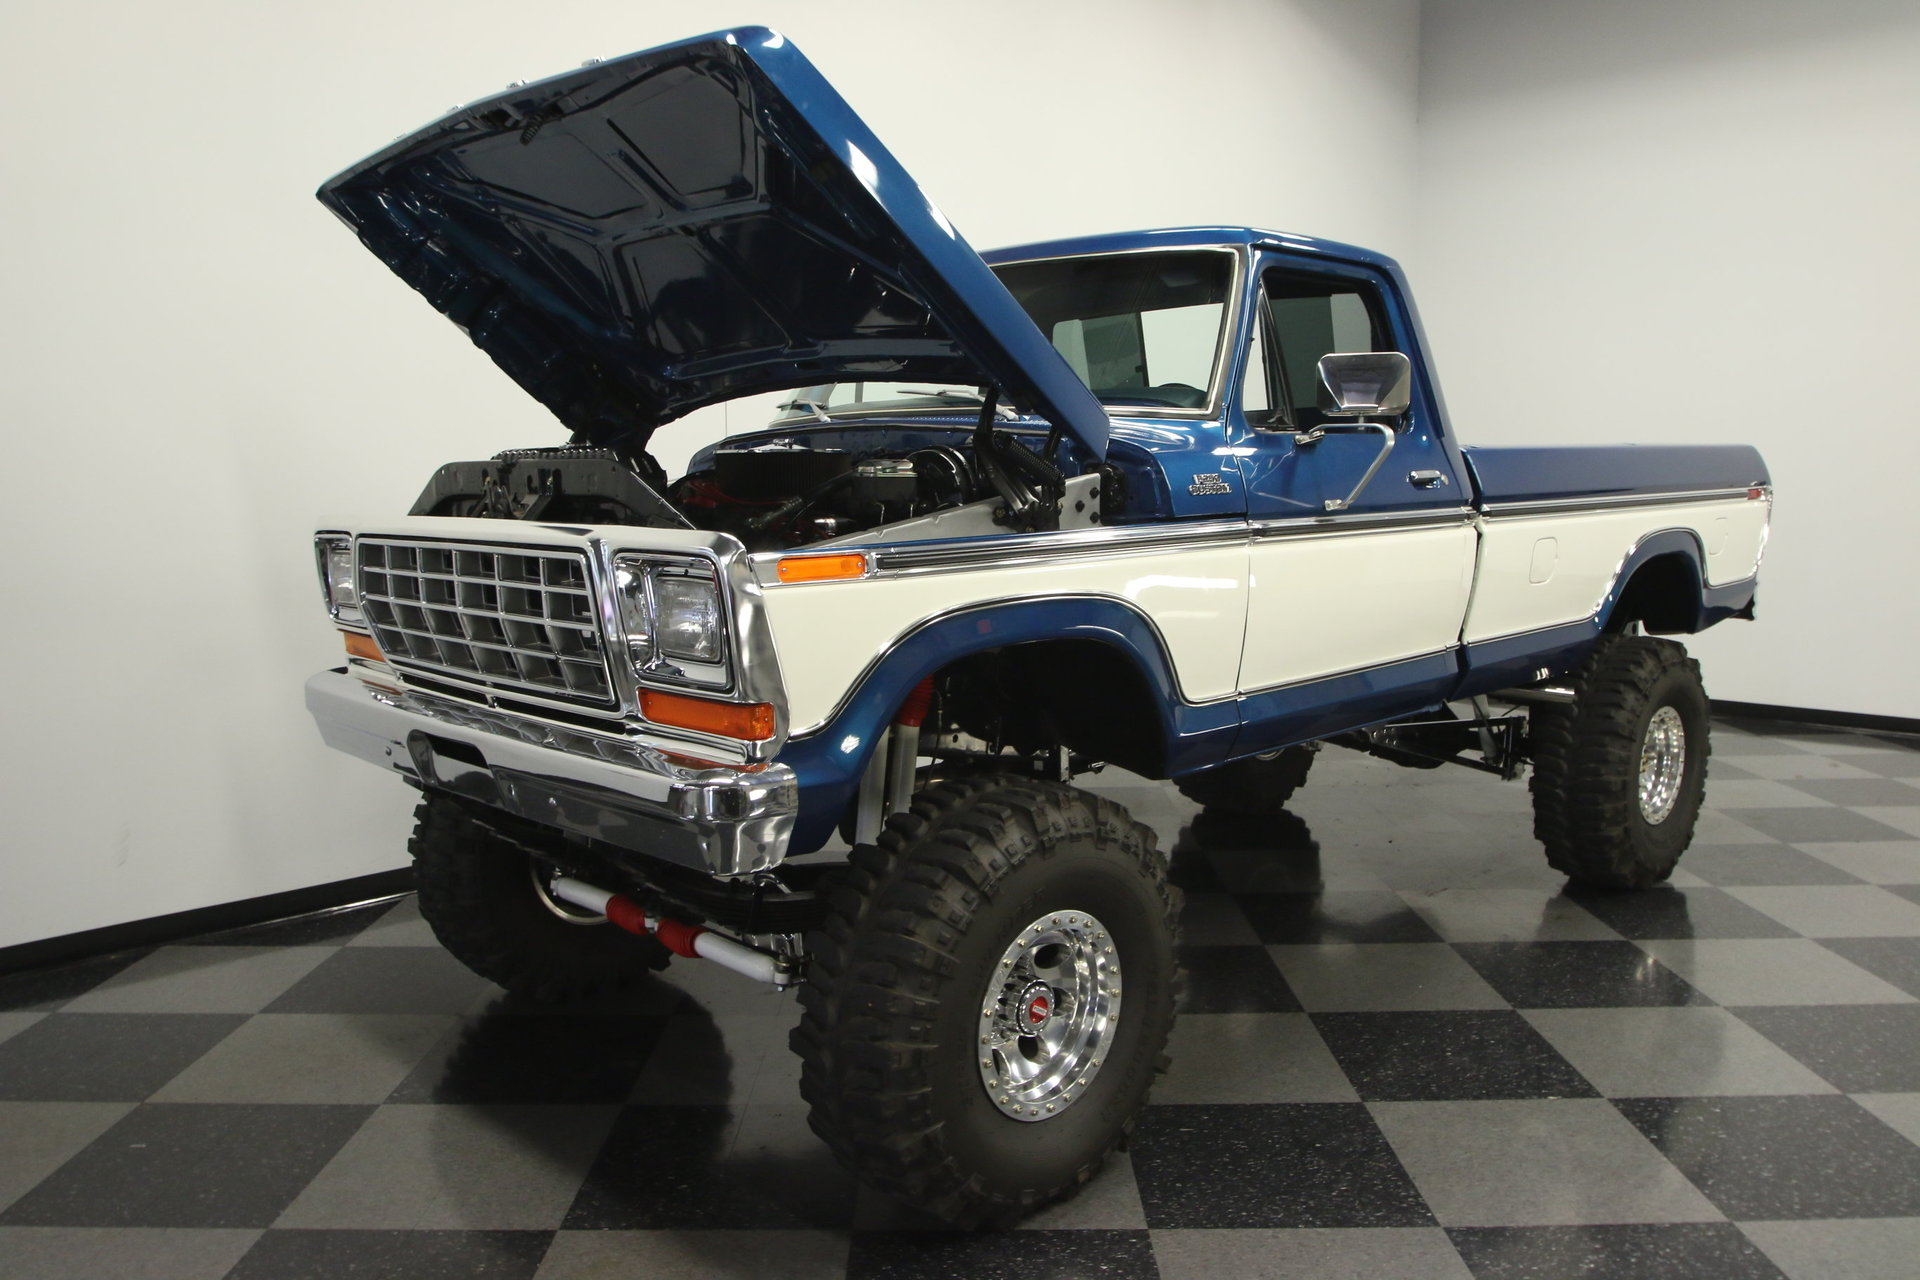 1978 Ford F 250 Streetside Classics The Nations Trusted Classic 1955 F100 White 4x4 View 360